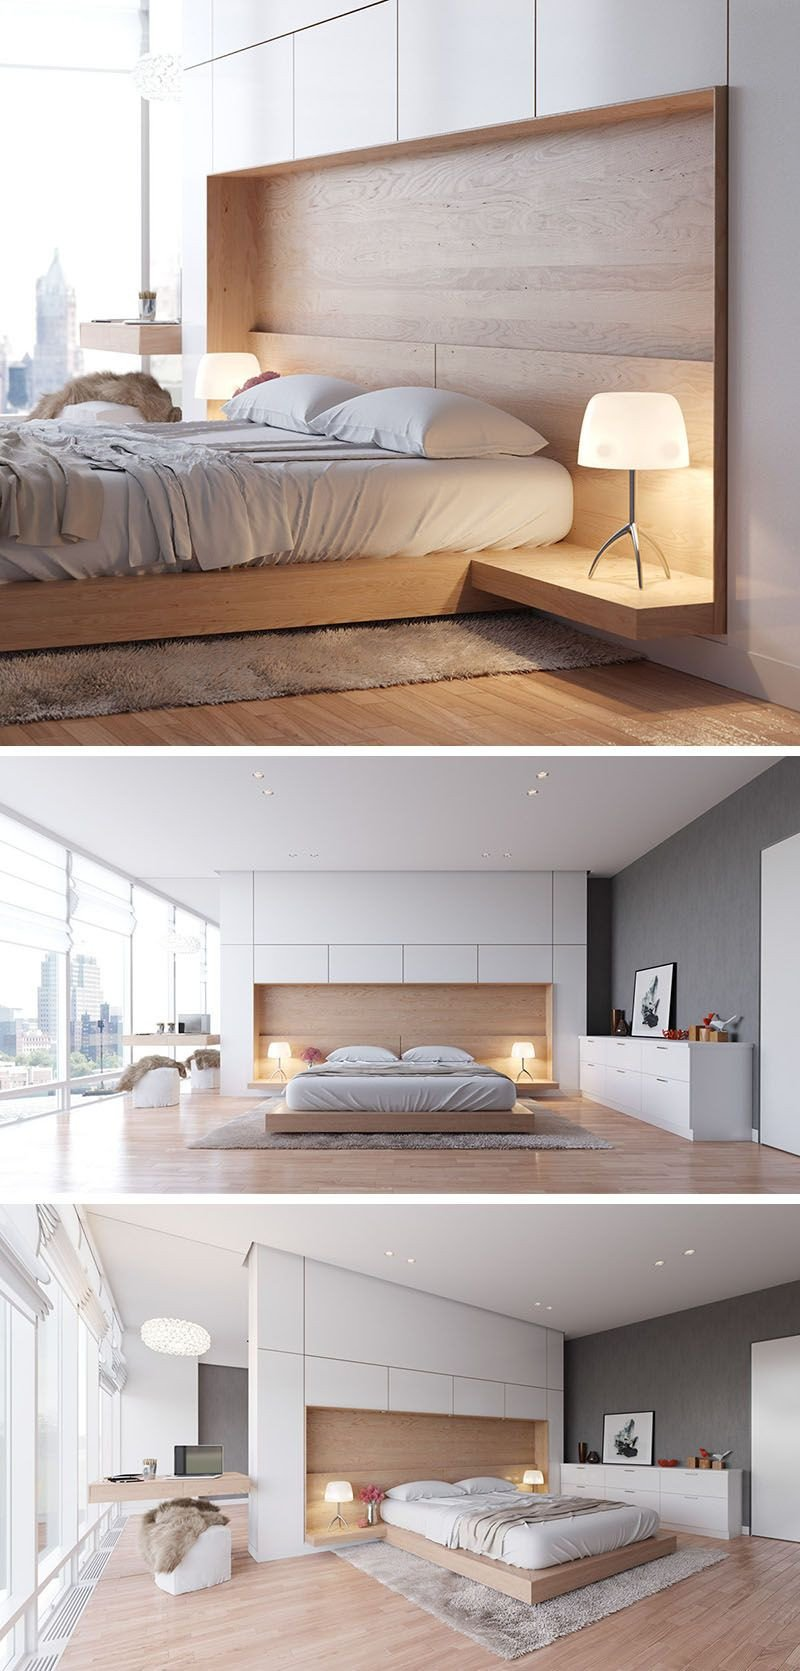 Side Table for Bedroom Luxury Bedroom Design Idea Bine Your Bed and Side Table Into